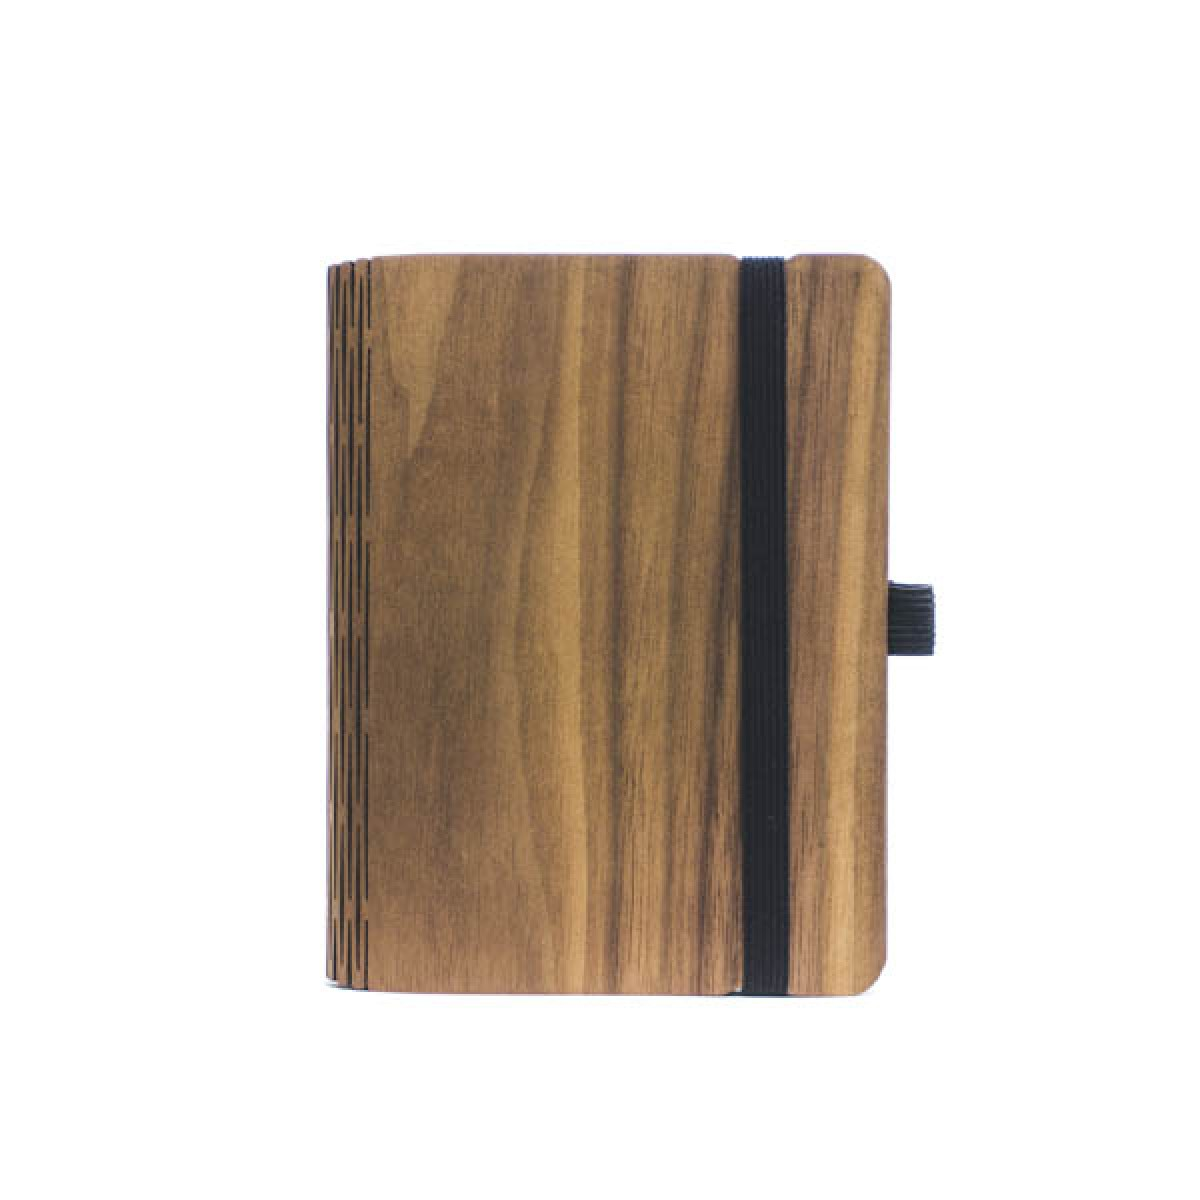 JUNGHOLZ Design Notizbuch, WoodBook, Walnuss, A6